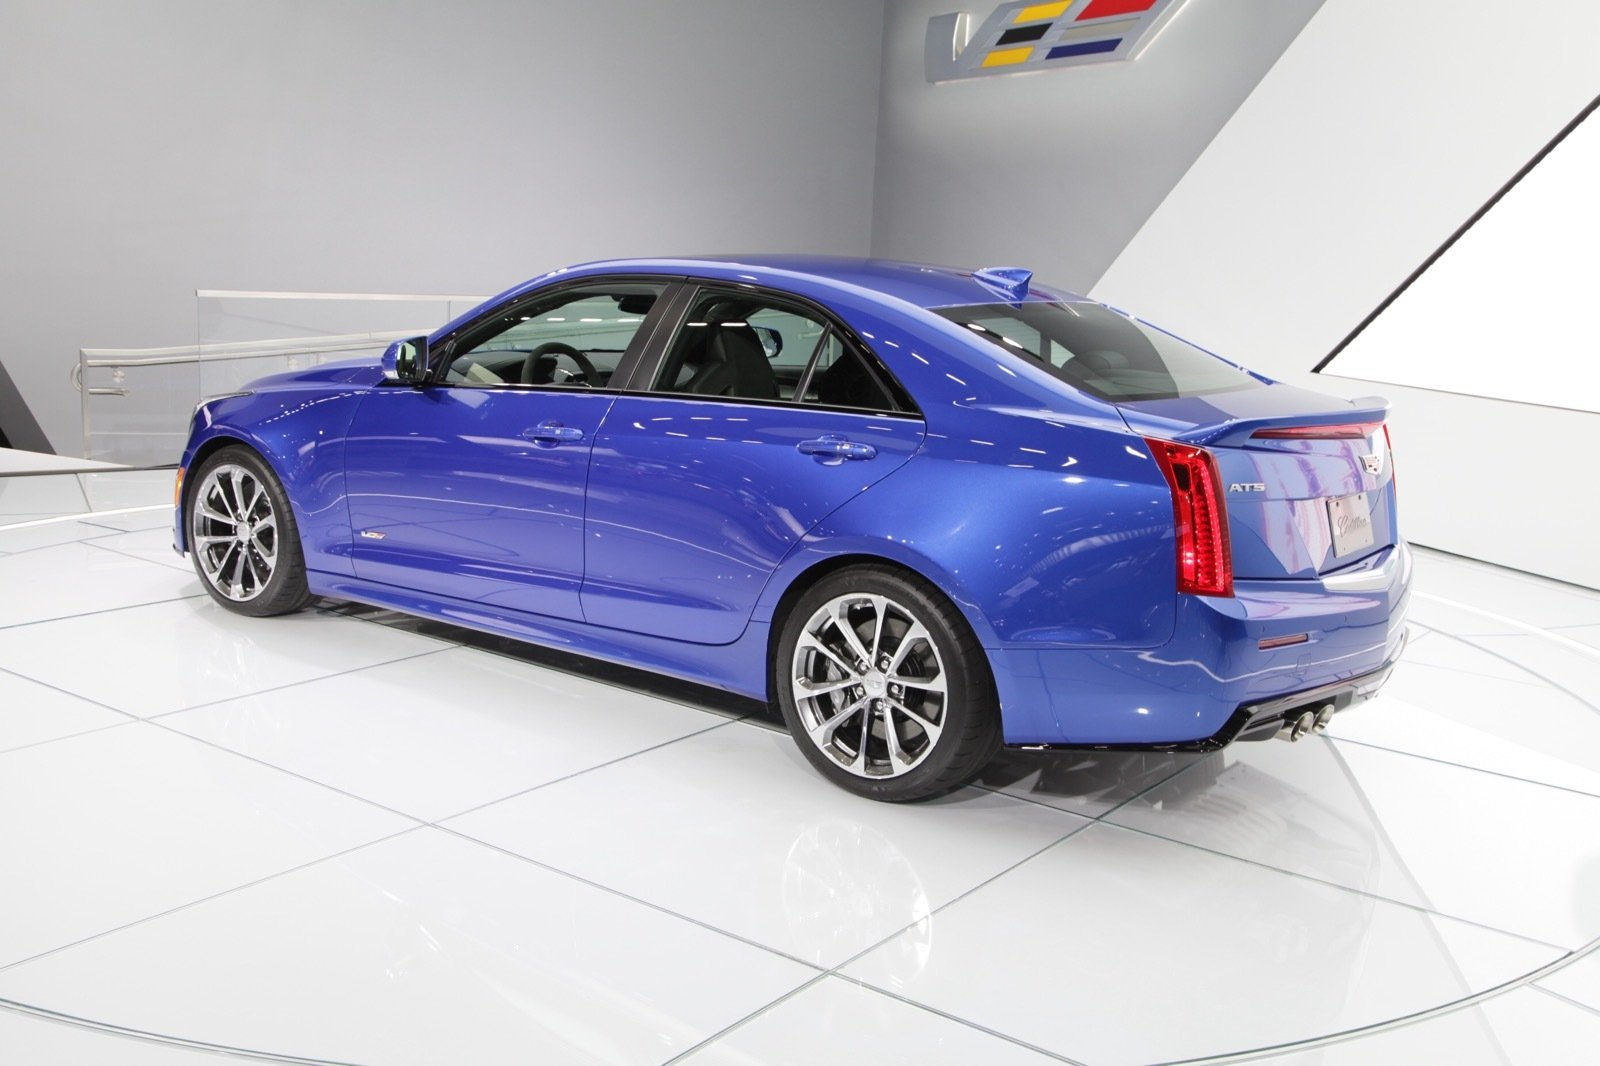 2016 cadillac ats v sedan picture 612825 car review top speed. Black Bedroom Furniture Sets. Home Design Ideas